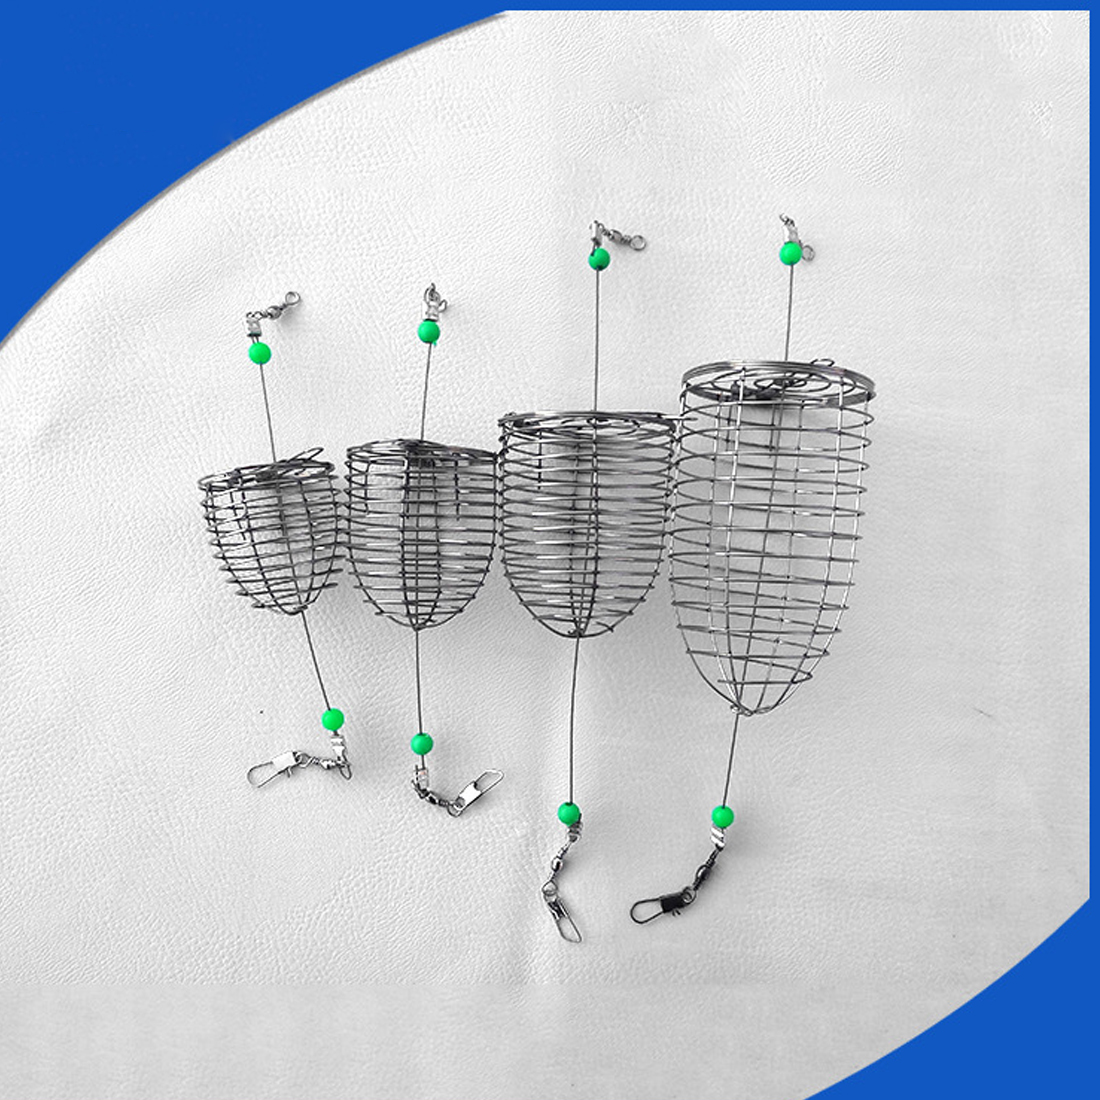 5Pcs Stainless Steel Wire Fishing Lure Cage Small Bait Basket Feeder Holder Trap